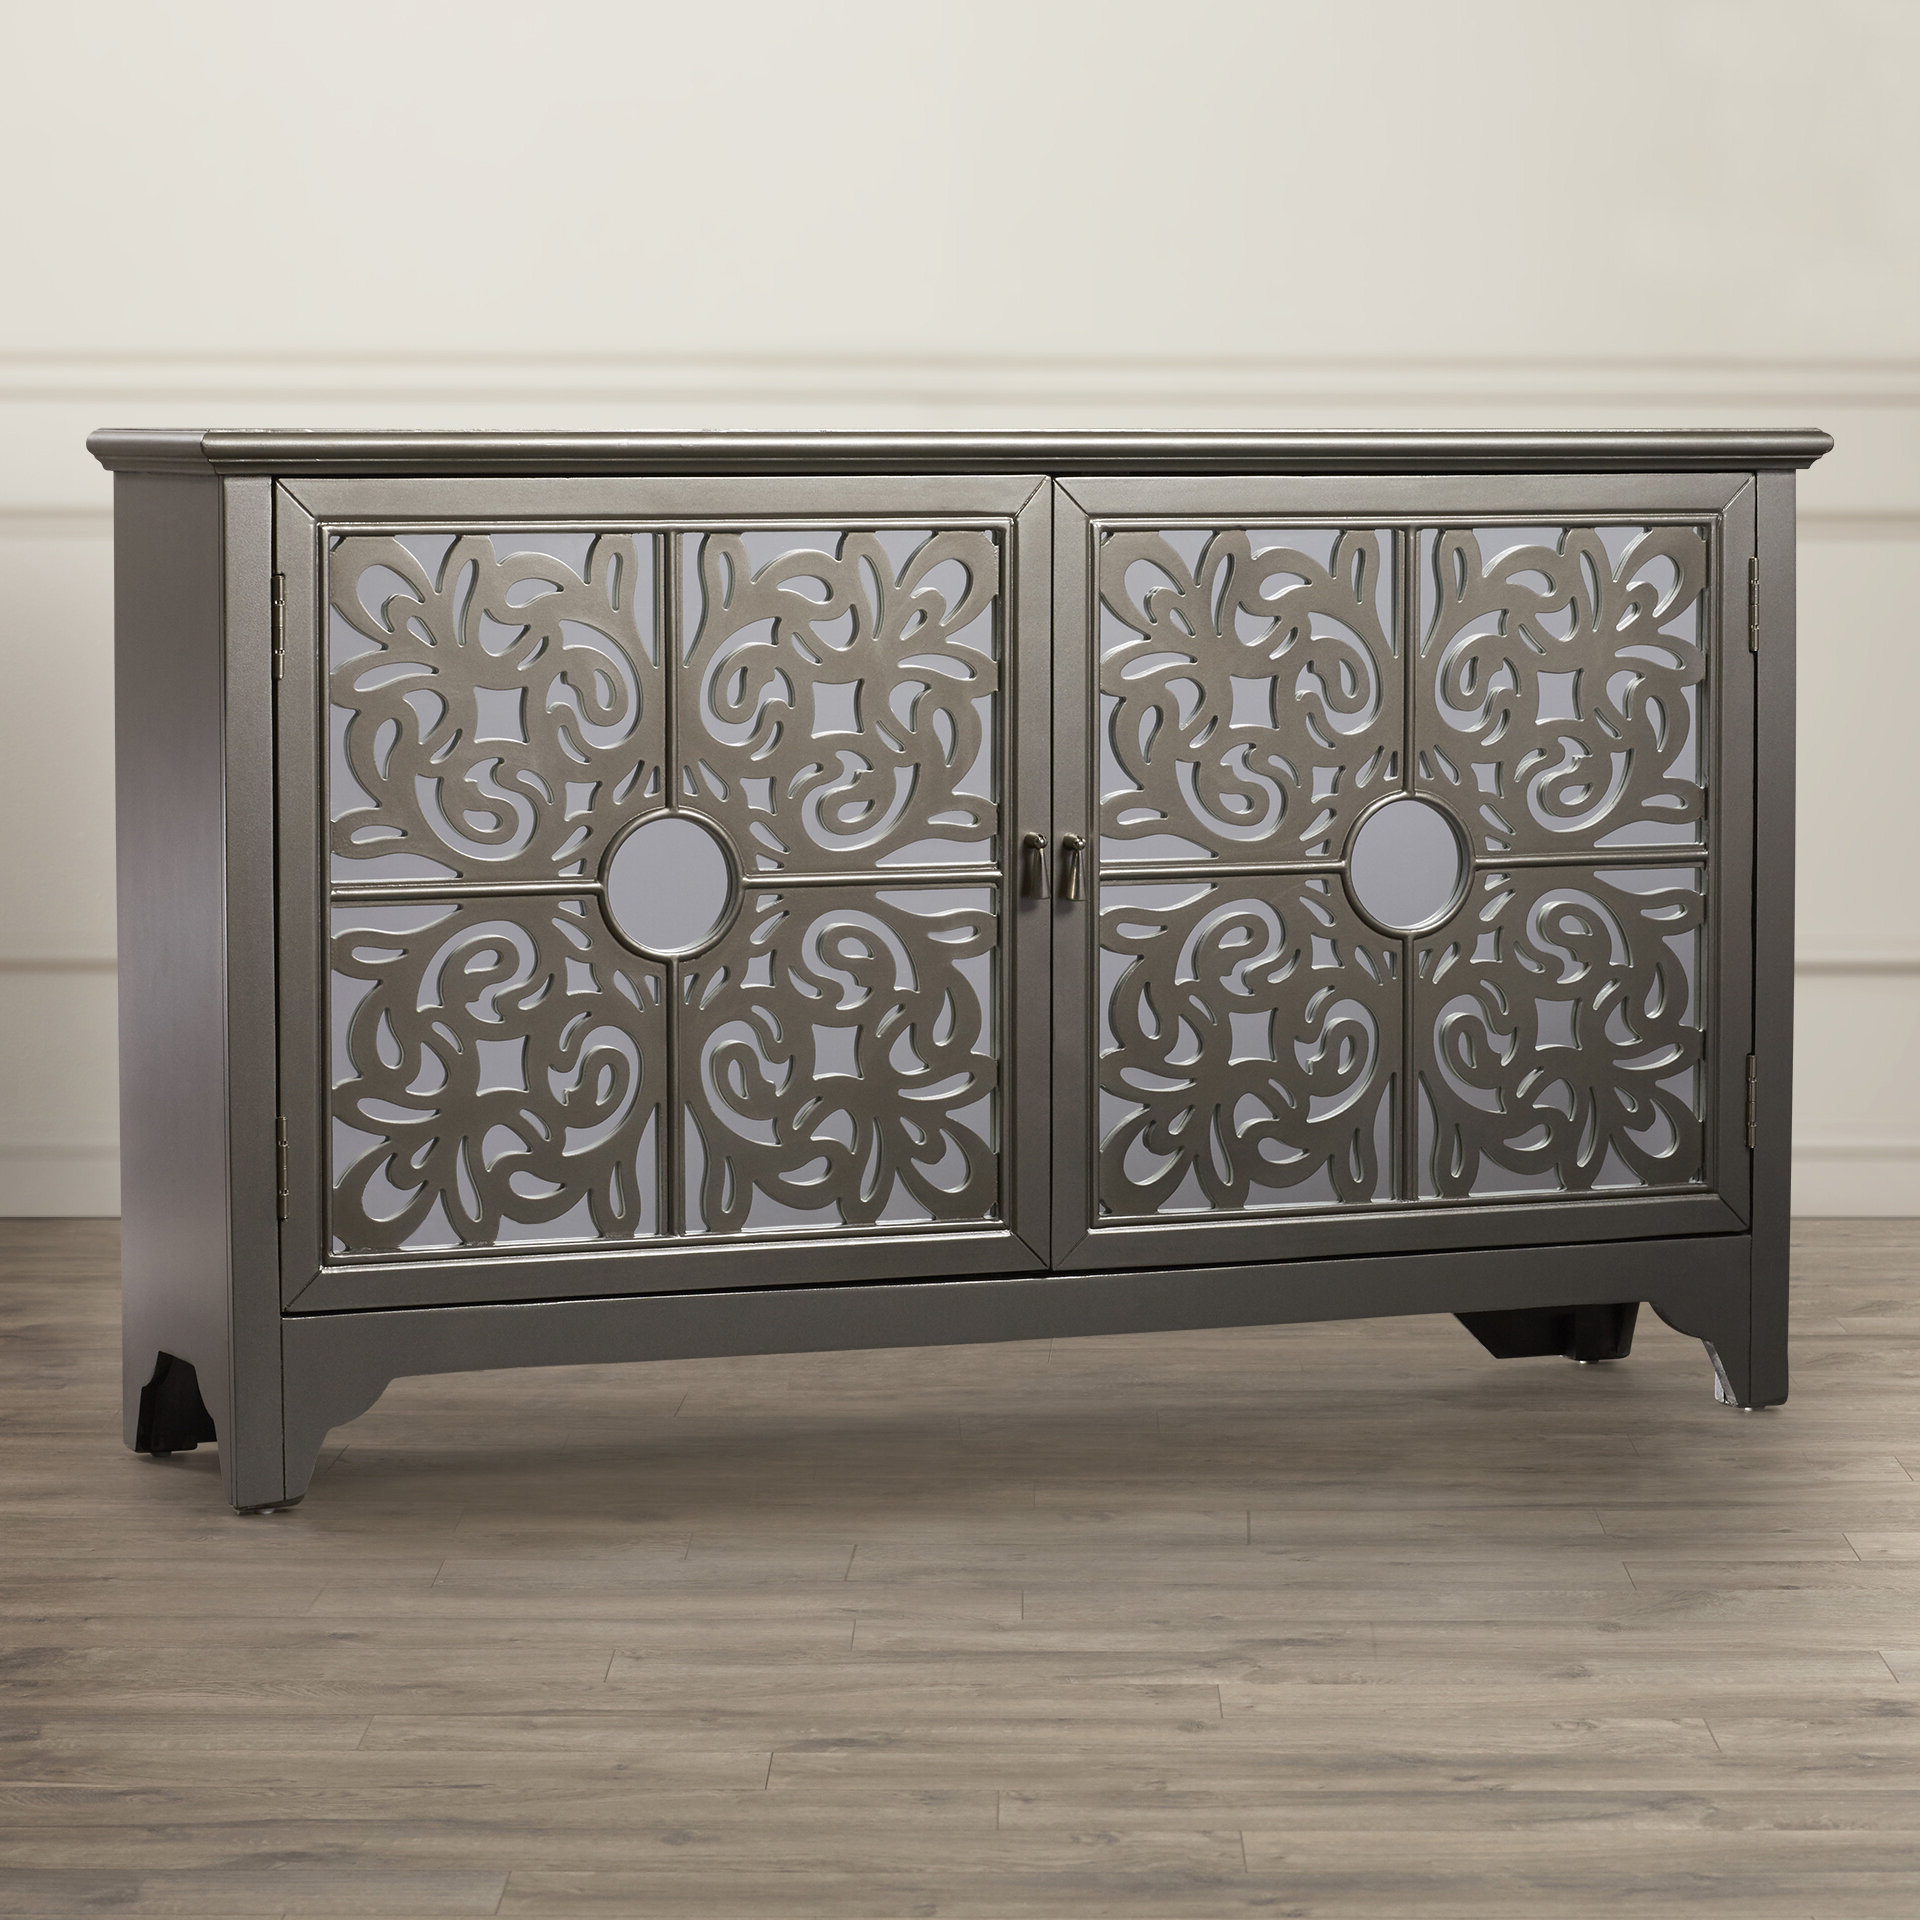 Farmhouse & Rustic Mirrored Sideboards & Buffets | Birch Lane Throughout Senda Credenzas (View 15 of 20)